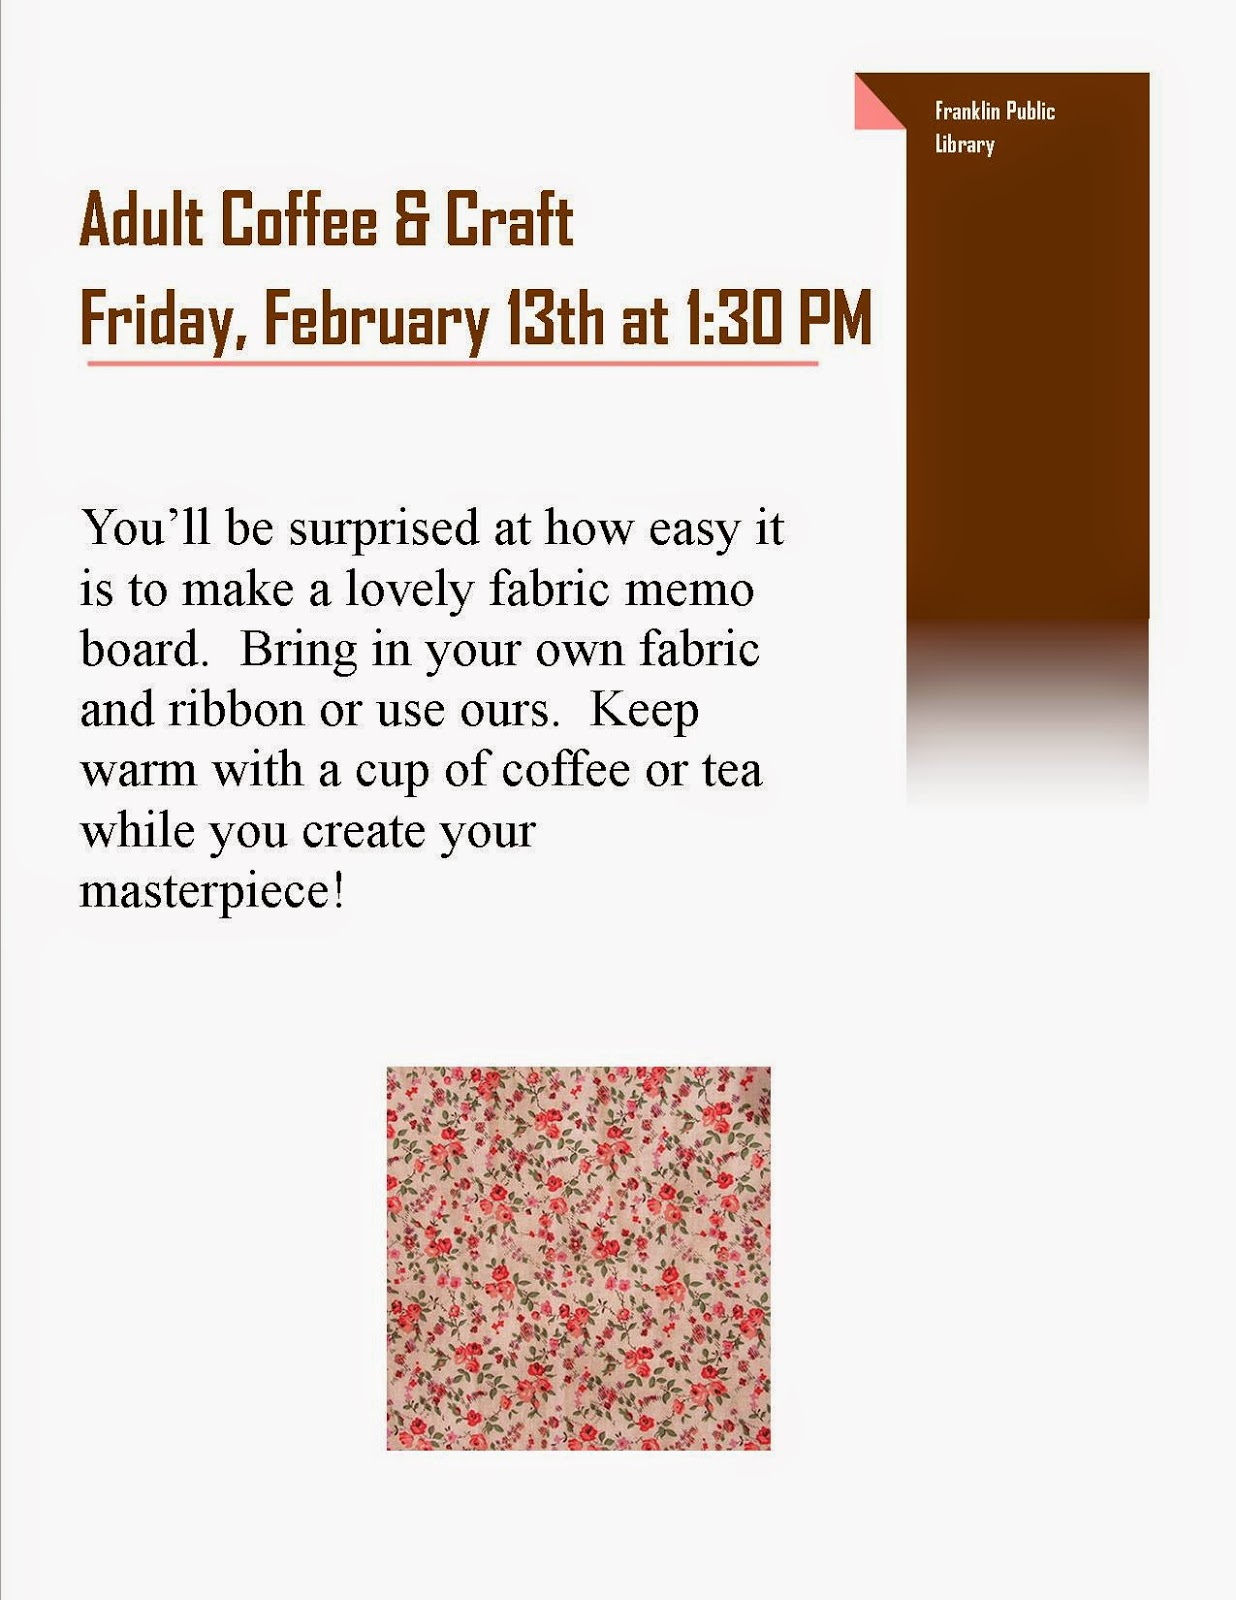 adult coffee and craft - Friday, Feb 13th